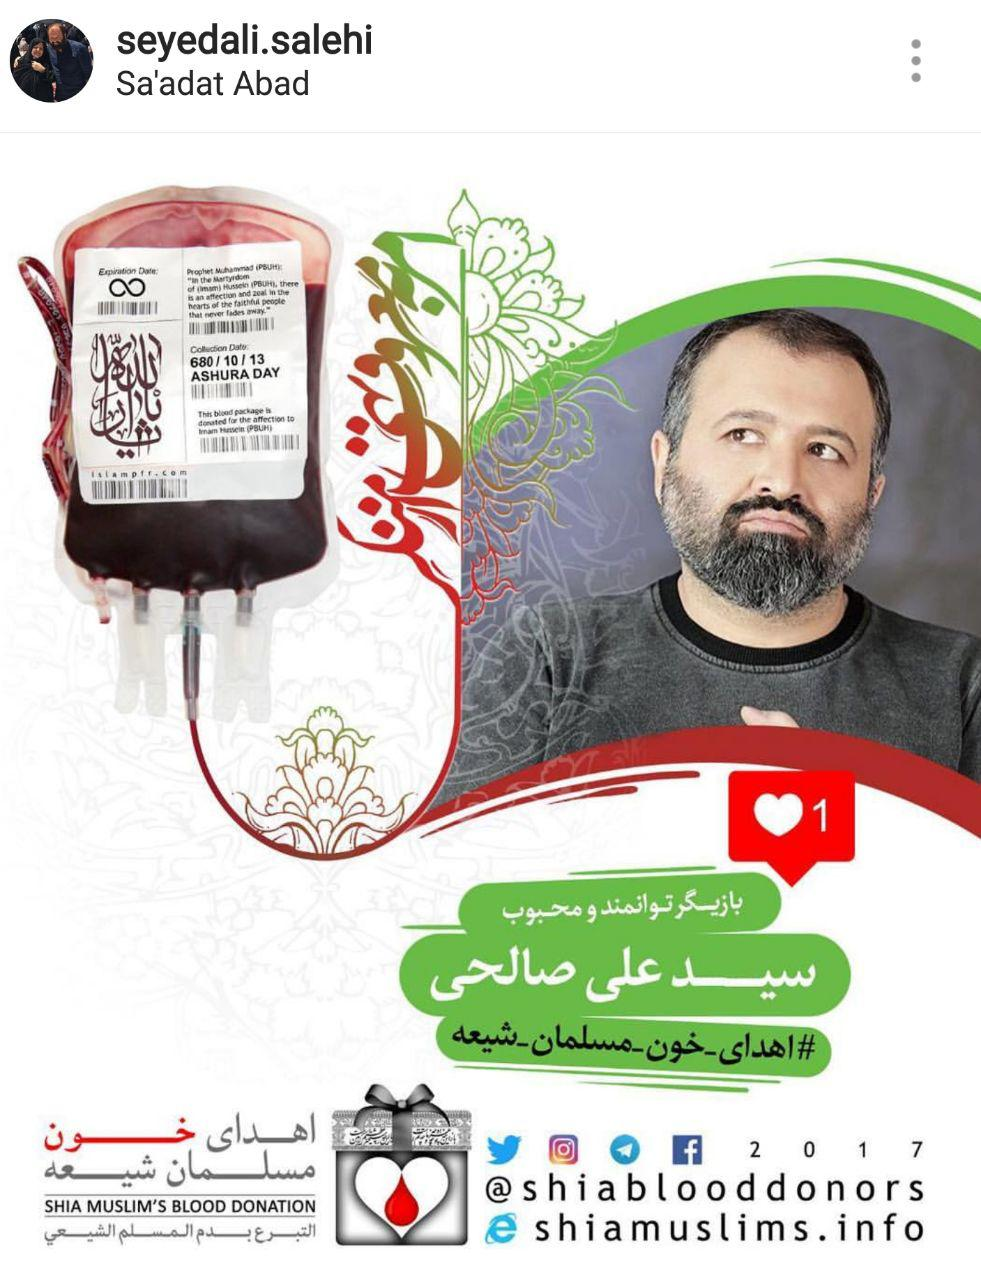 shia muslims blood donation